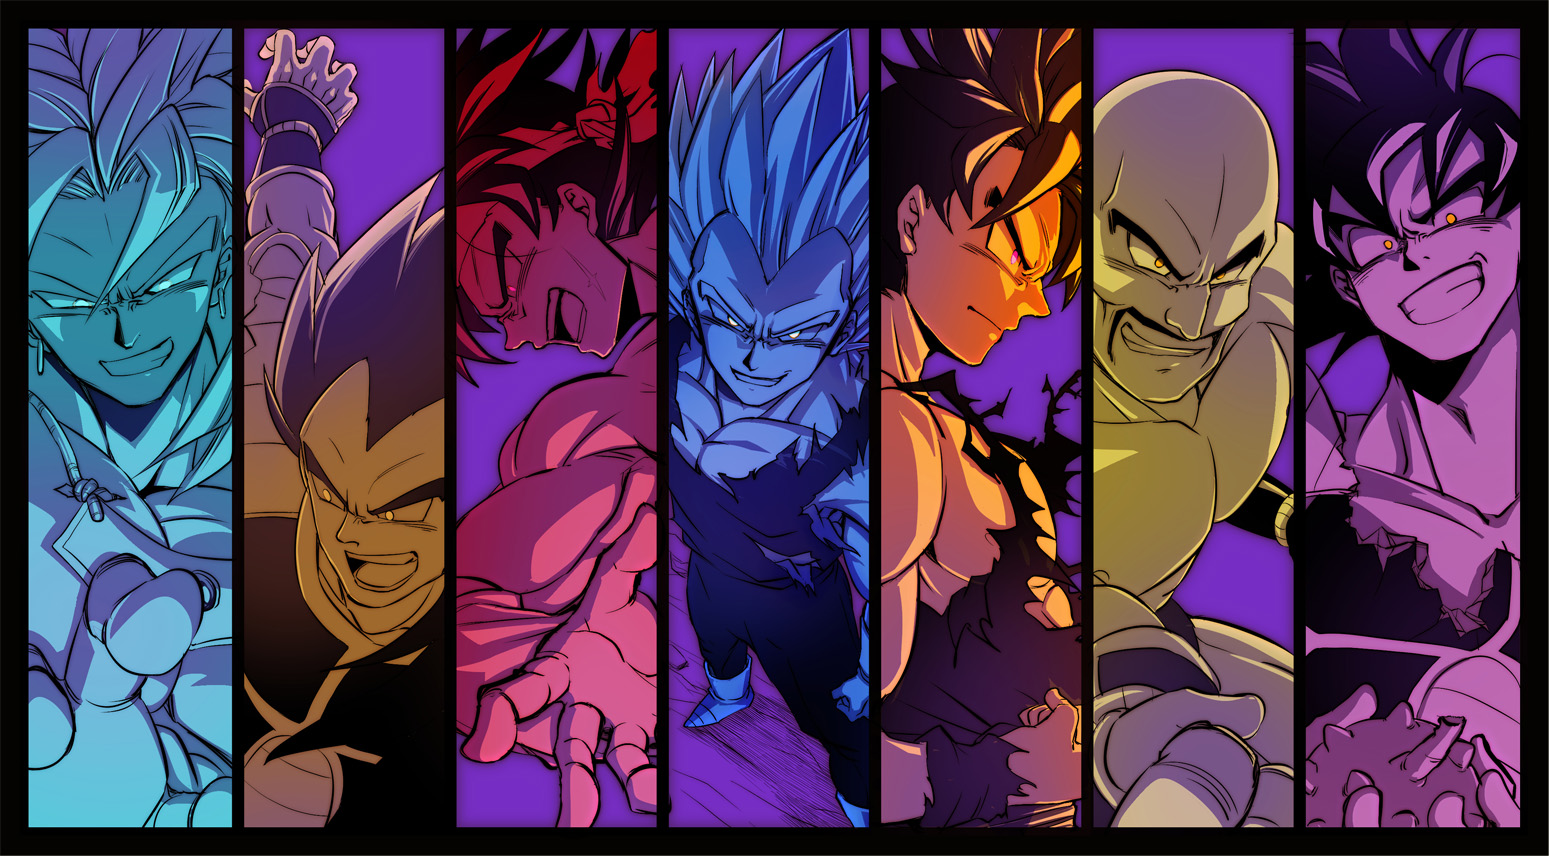 Broly dragon ball zerochan anime image board - Images dragon ball z ...